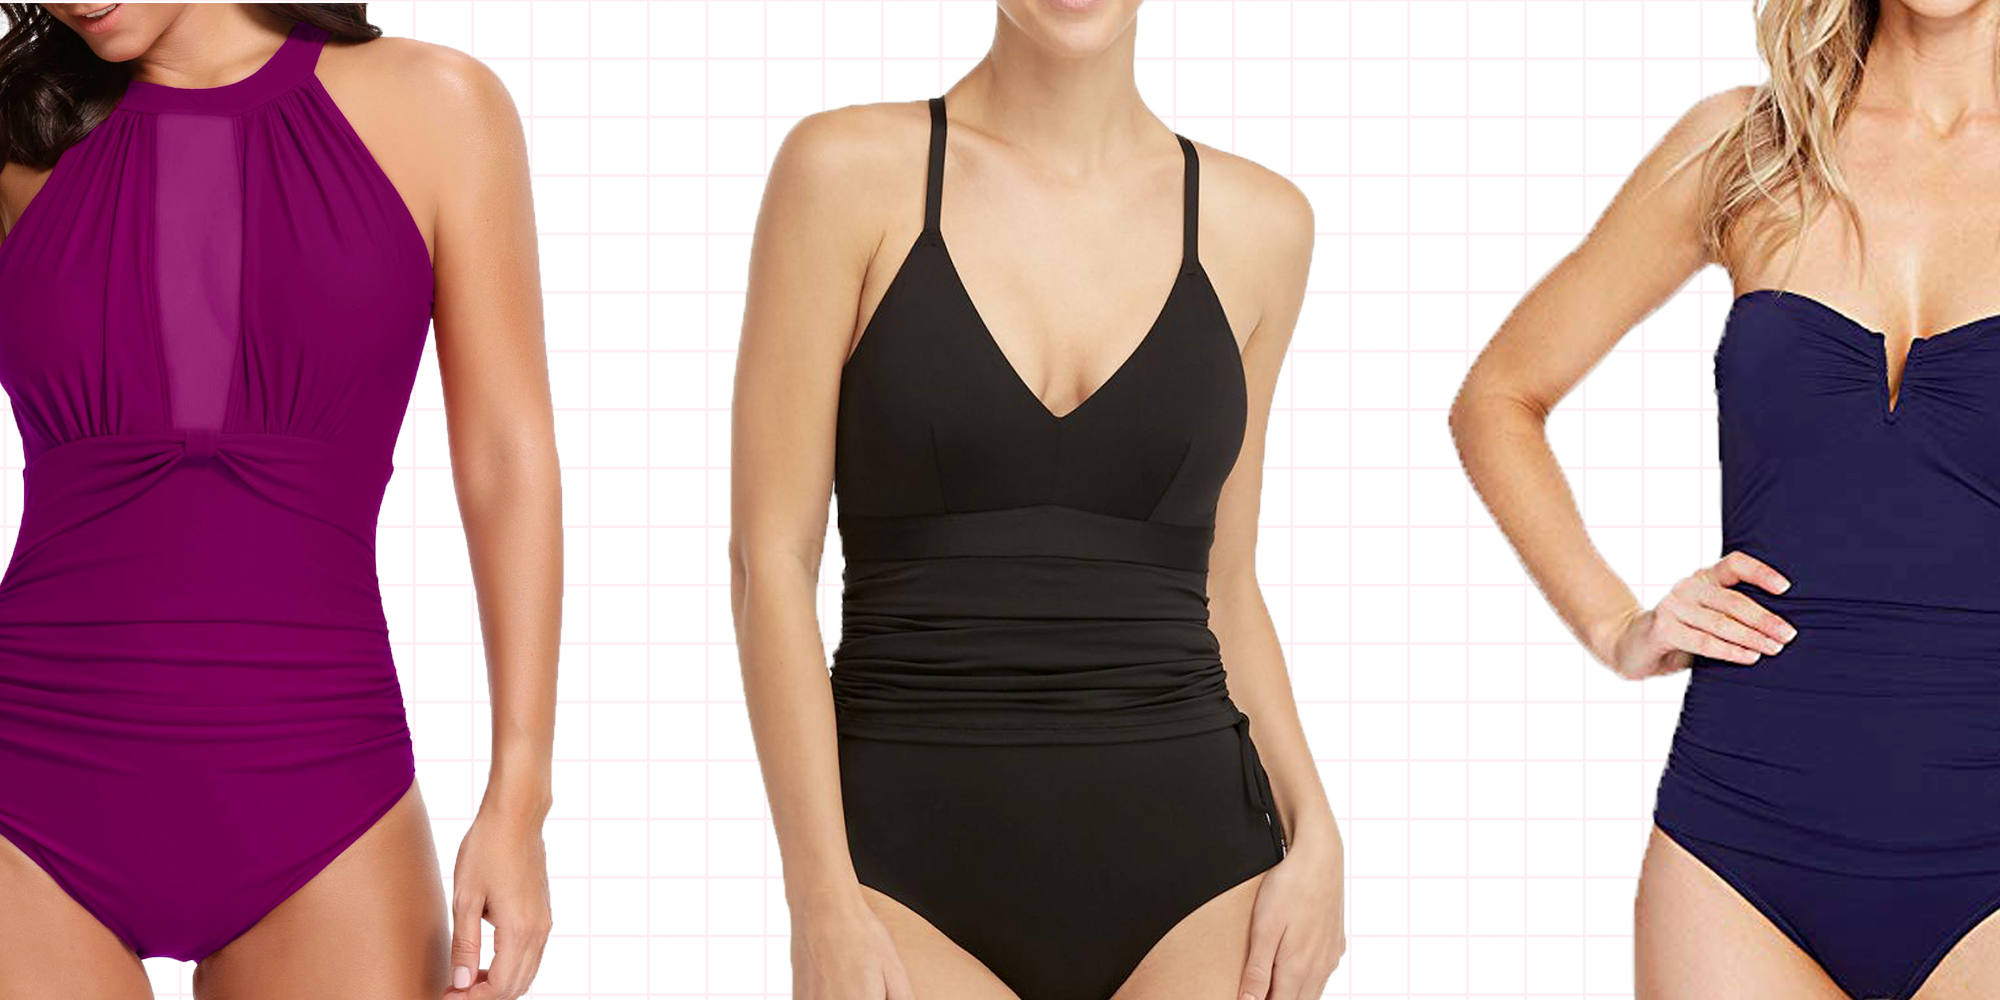 Things To Consider When Buying Plus Size Swimwear